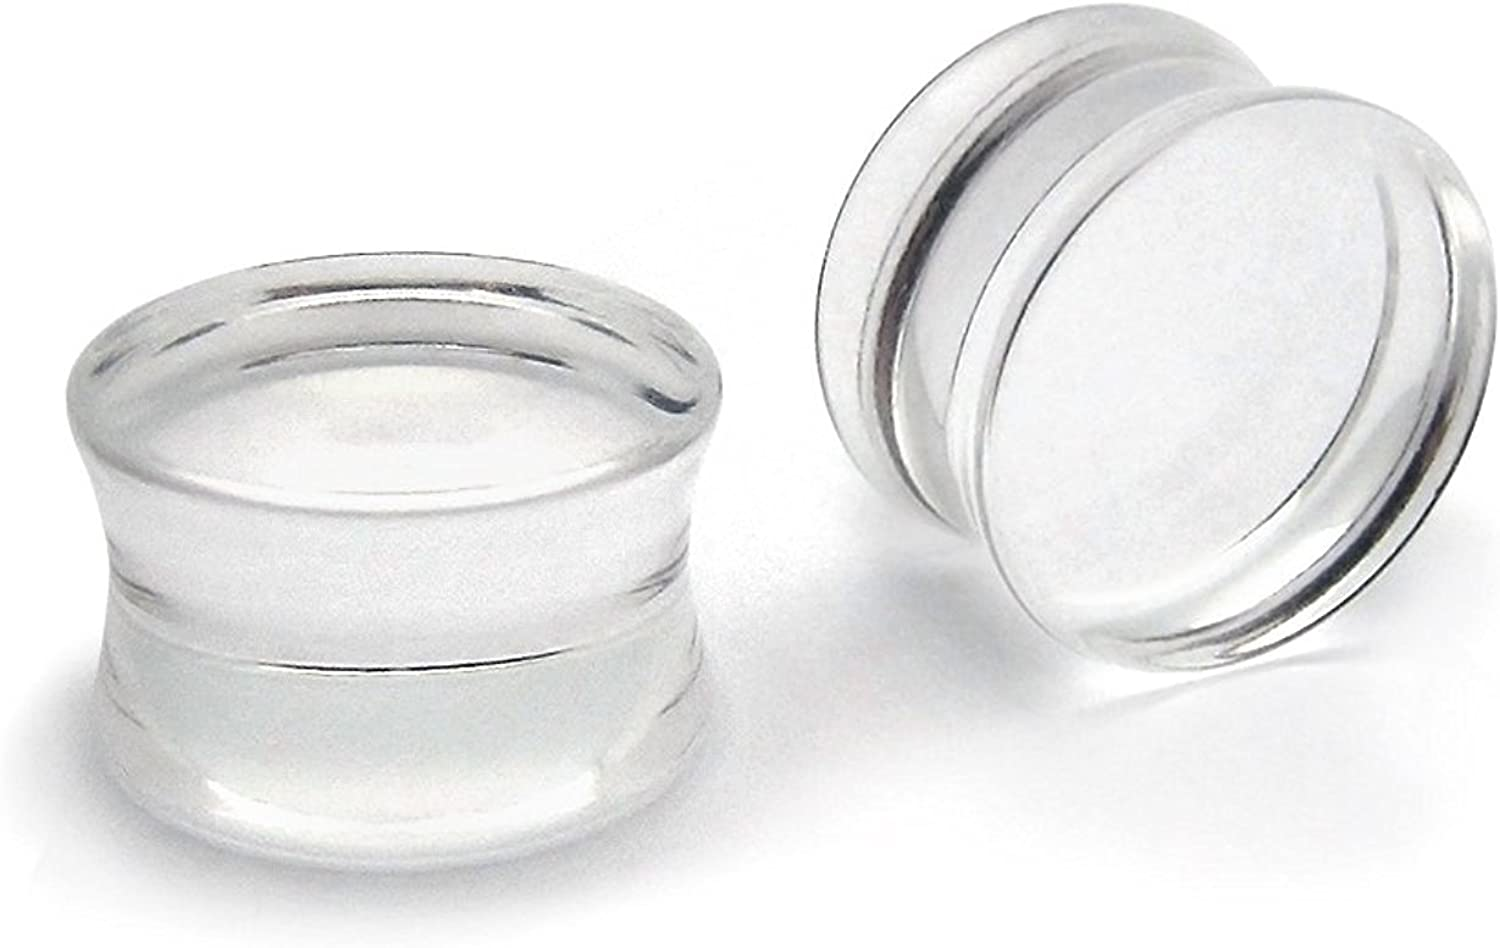 25mm UV Acrylic Ultra Clear Double Flared Saddle Plugs Choose From Multiple Sizes from 10GA to 1 2.5mm !